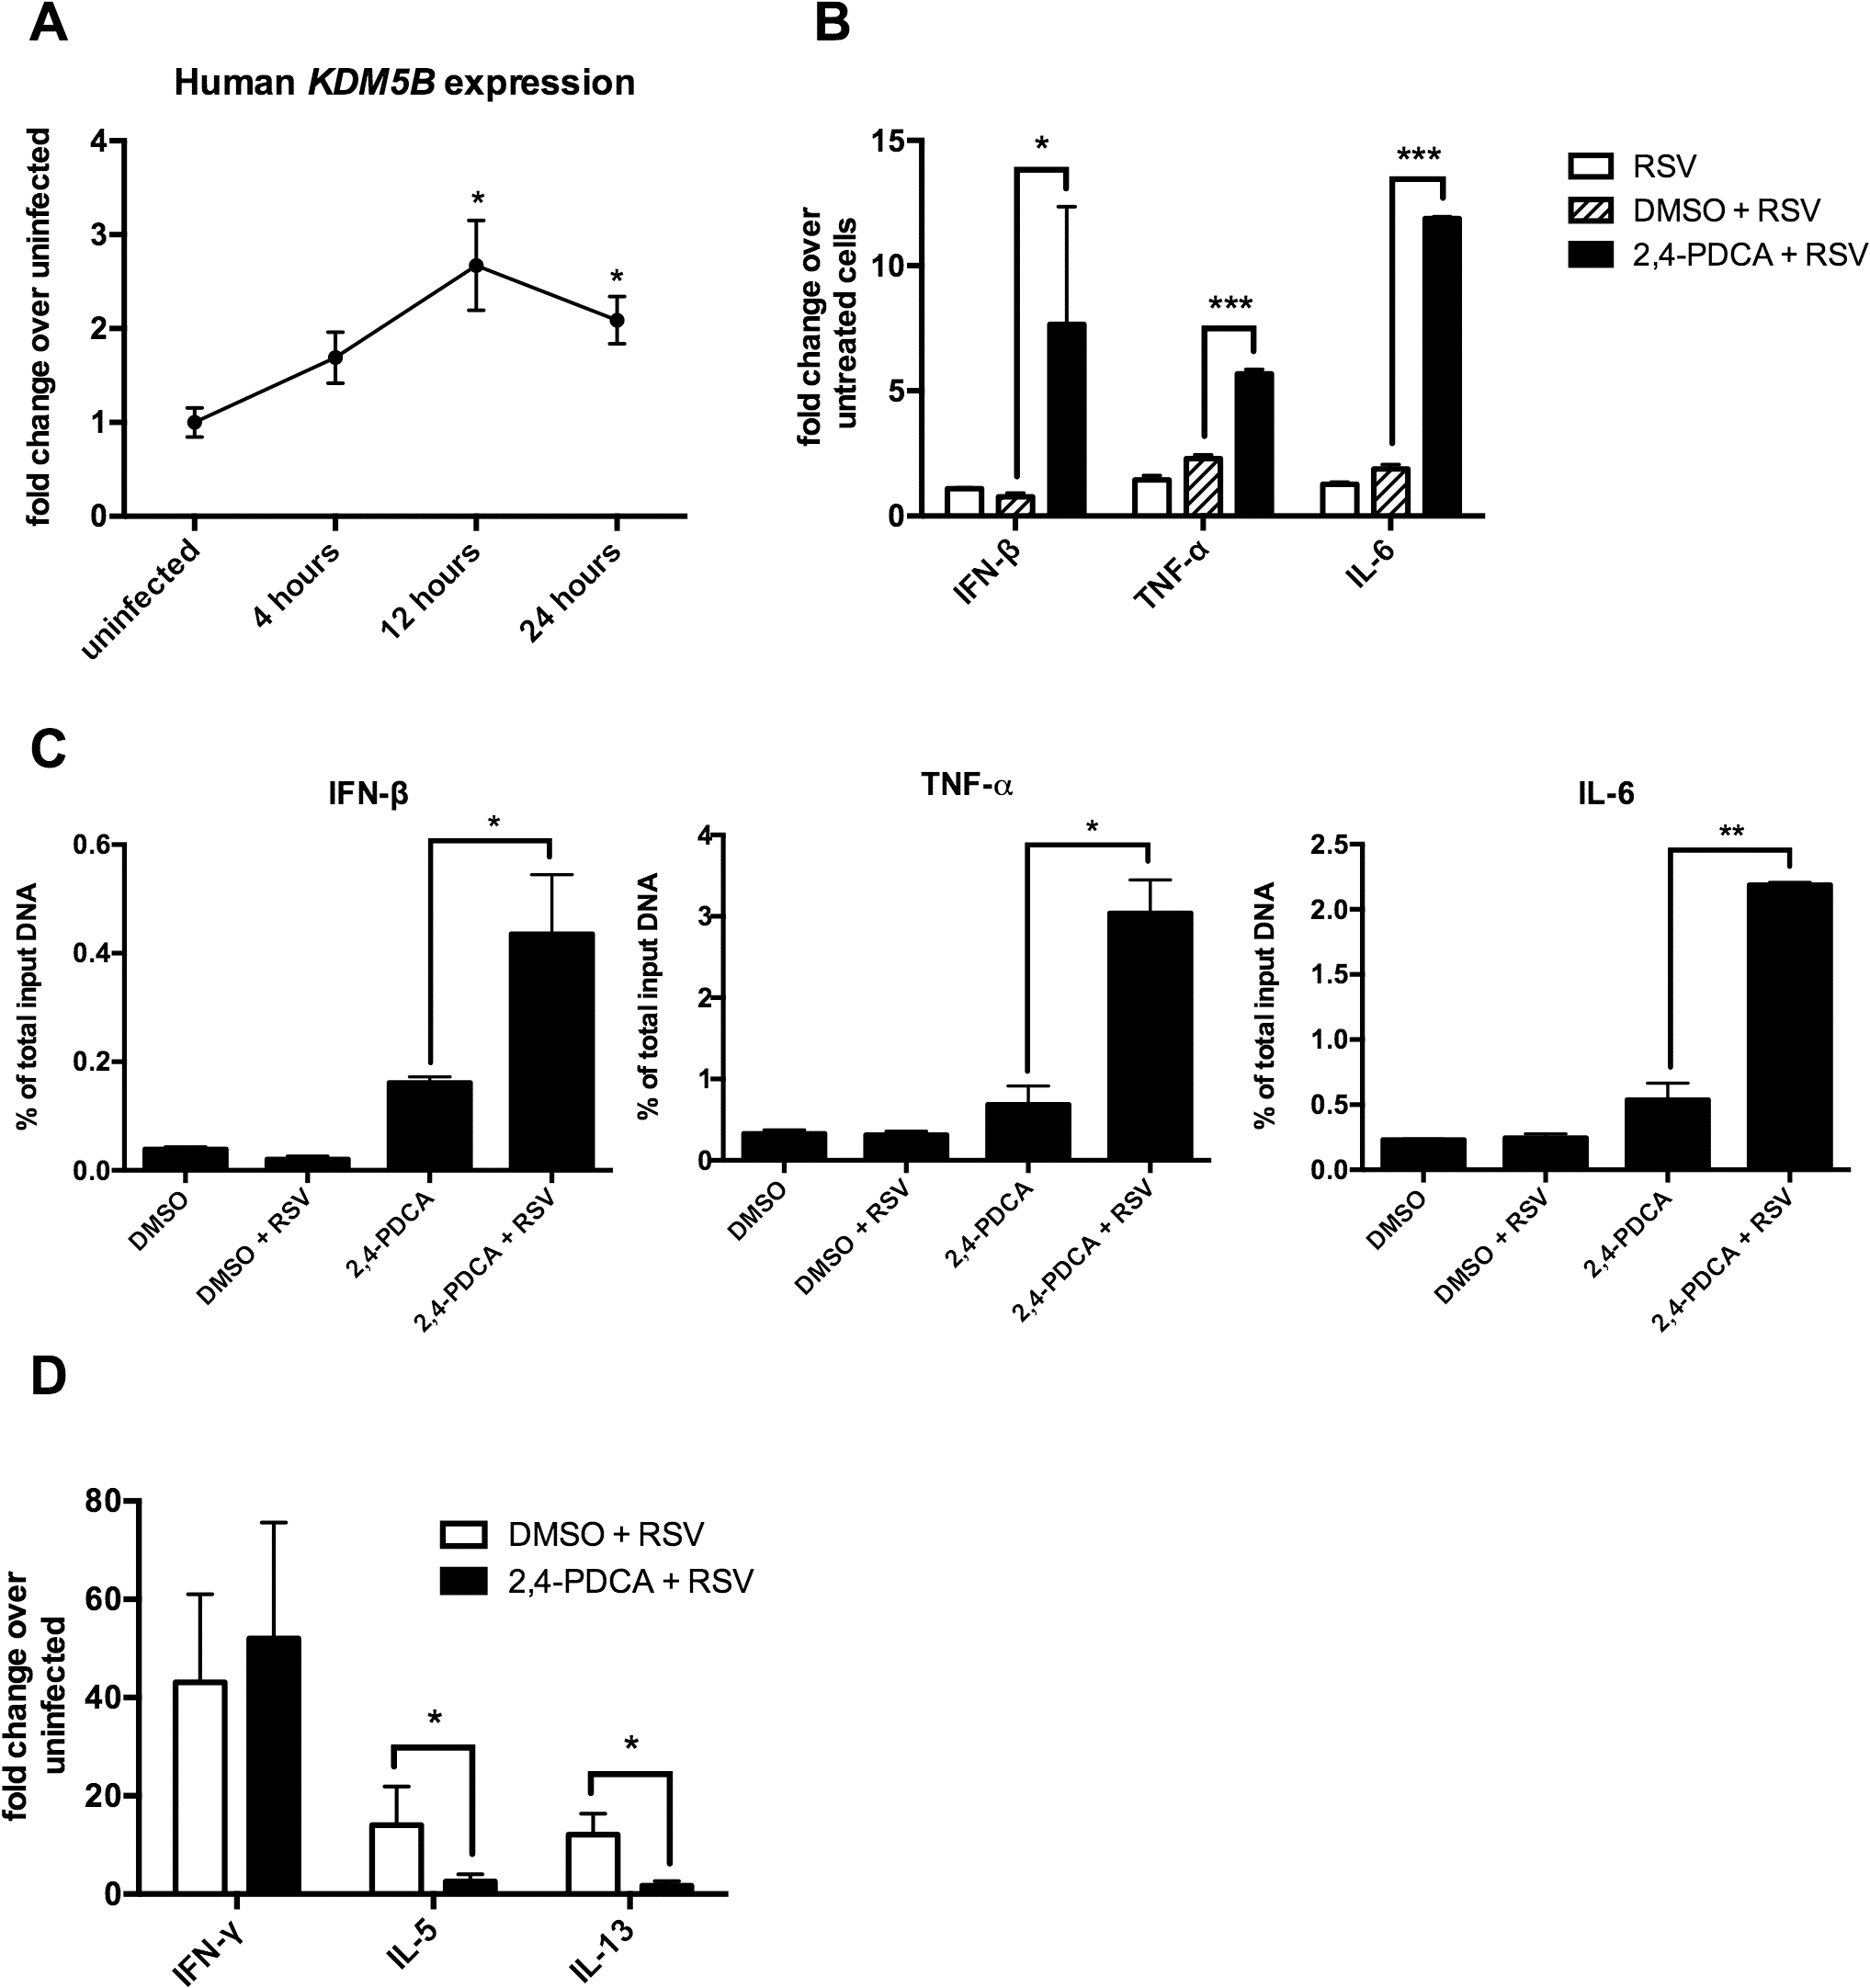 Inhibiting KDM5B in human monocyte-derived DCs leads to increased cytokine production.